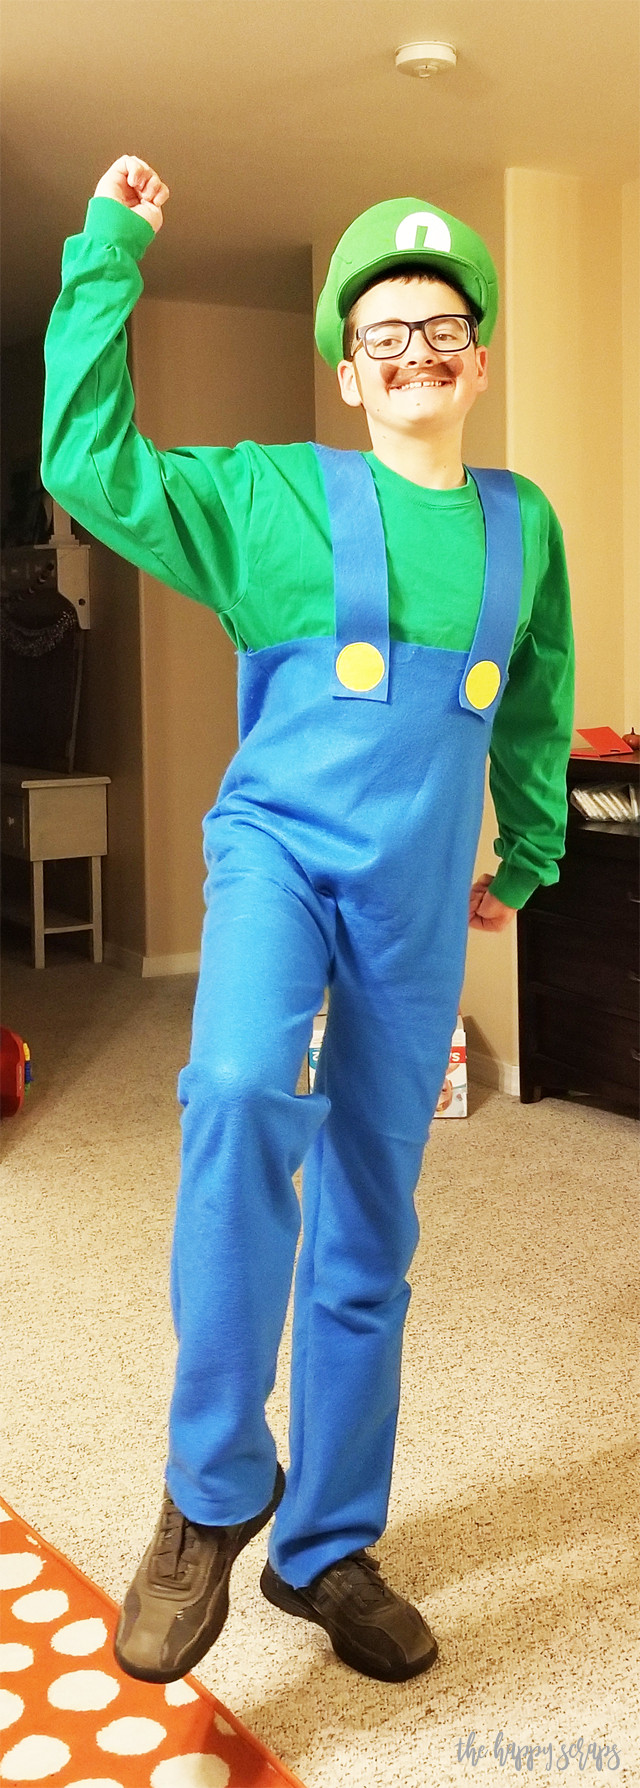 Super Mario Costume DIY  DIY Super Mario Brothers Costumes The Happy Scraps